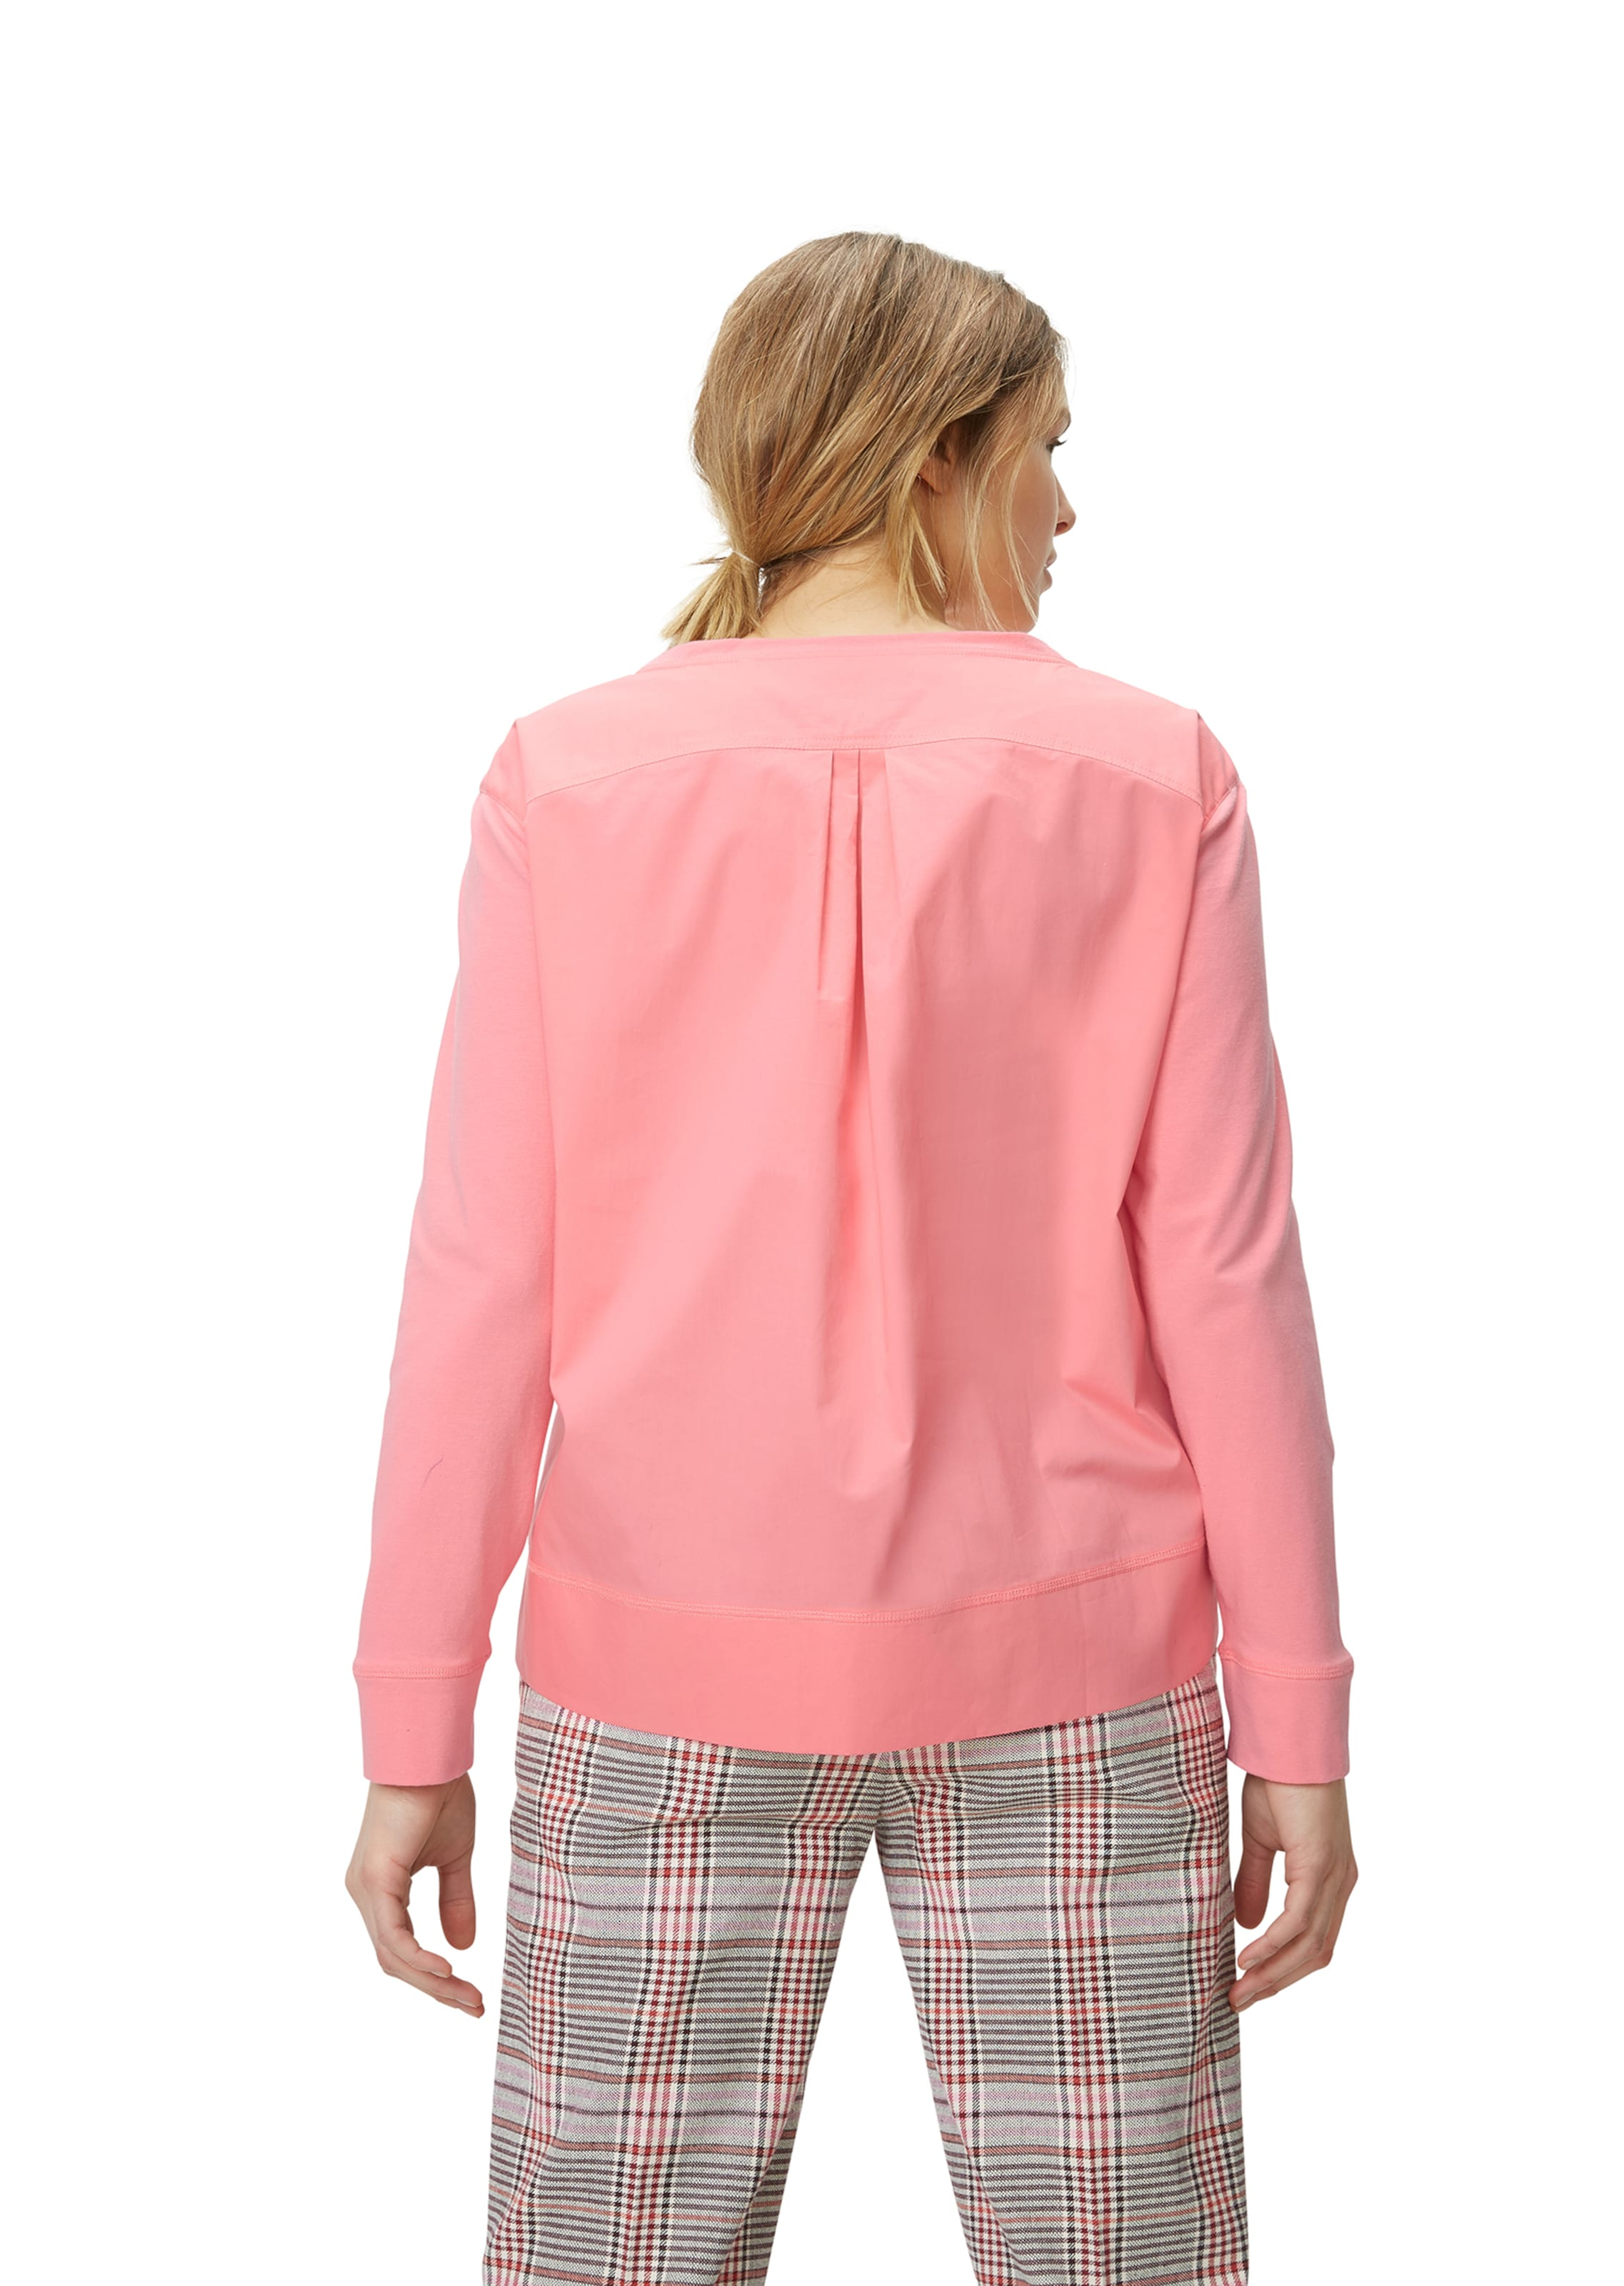 Bluse Hellpink O'polo Marc In Marc VSjqzMpULG